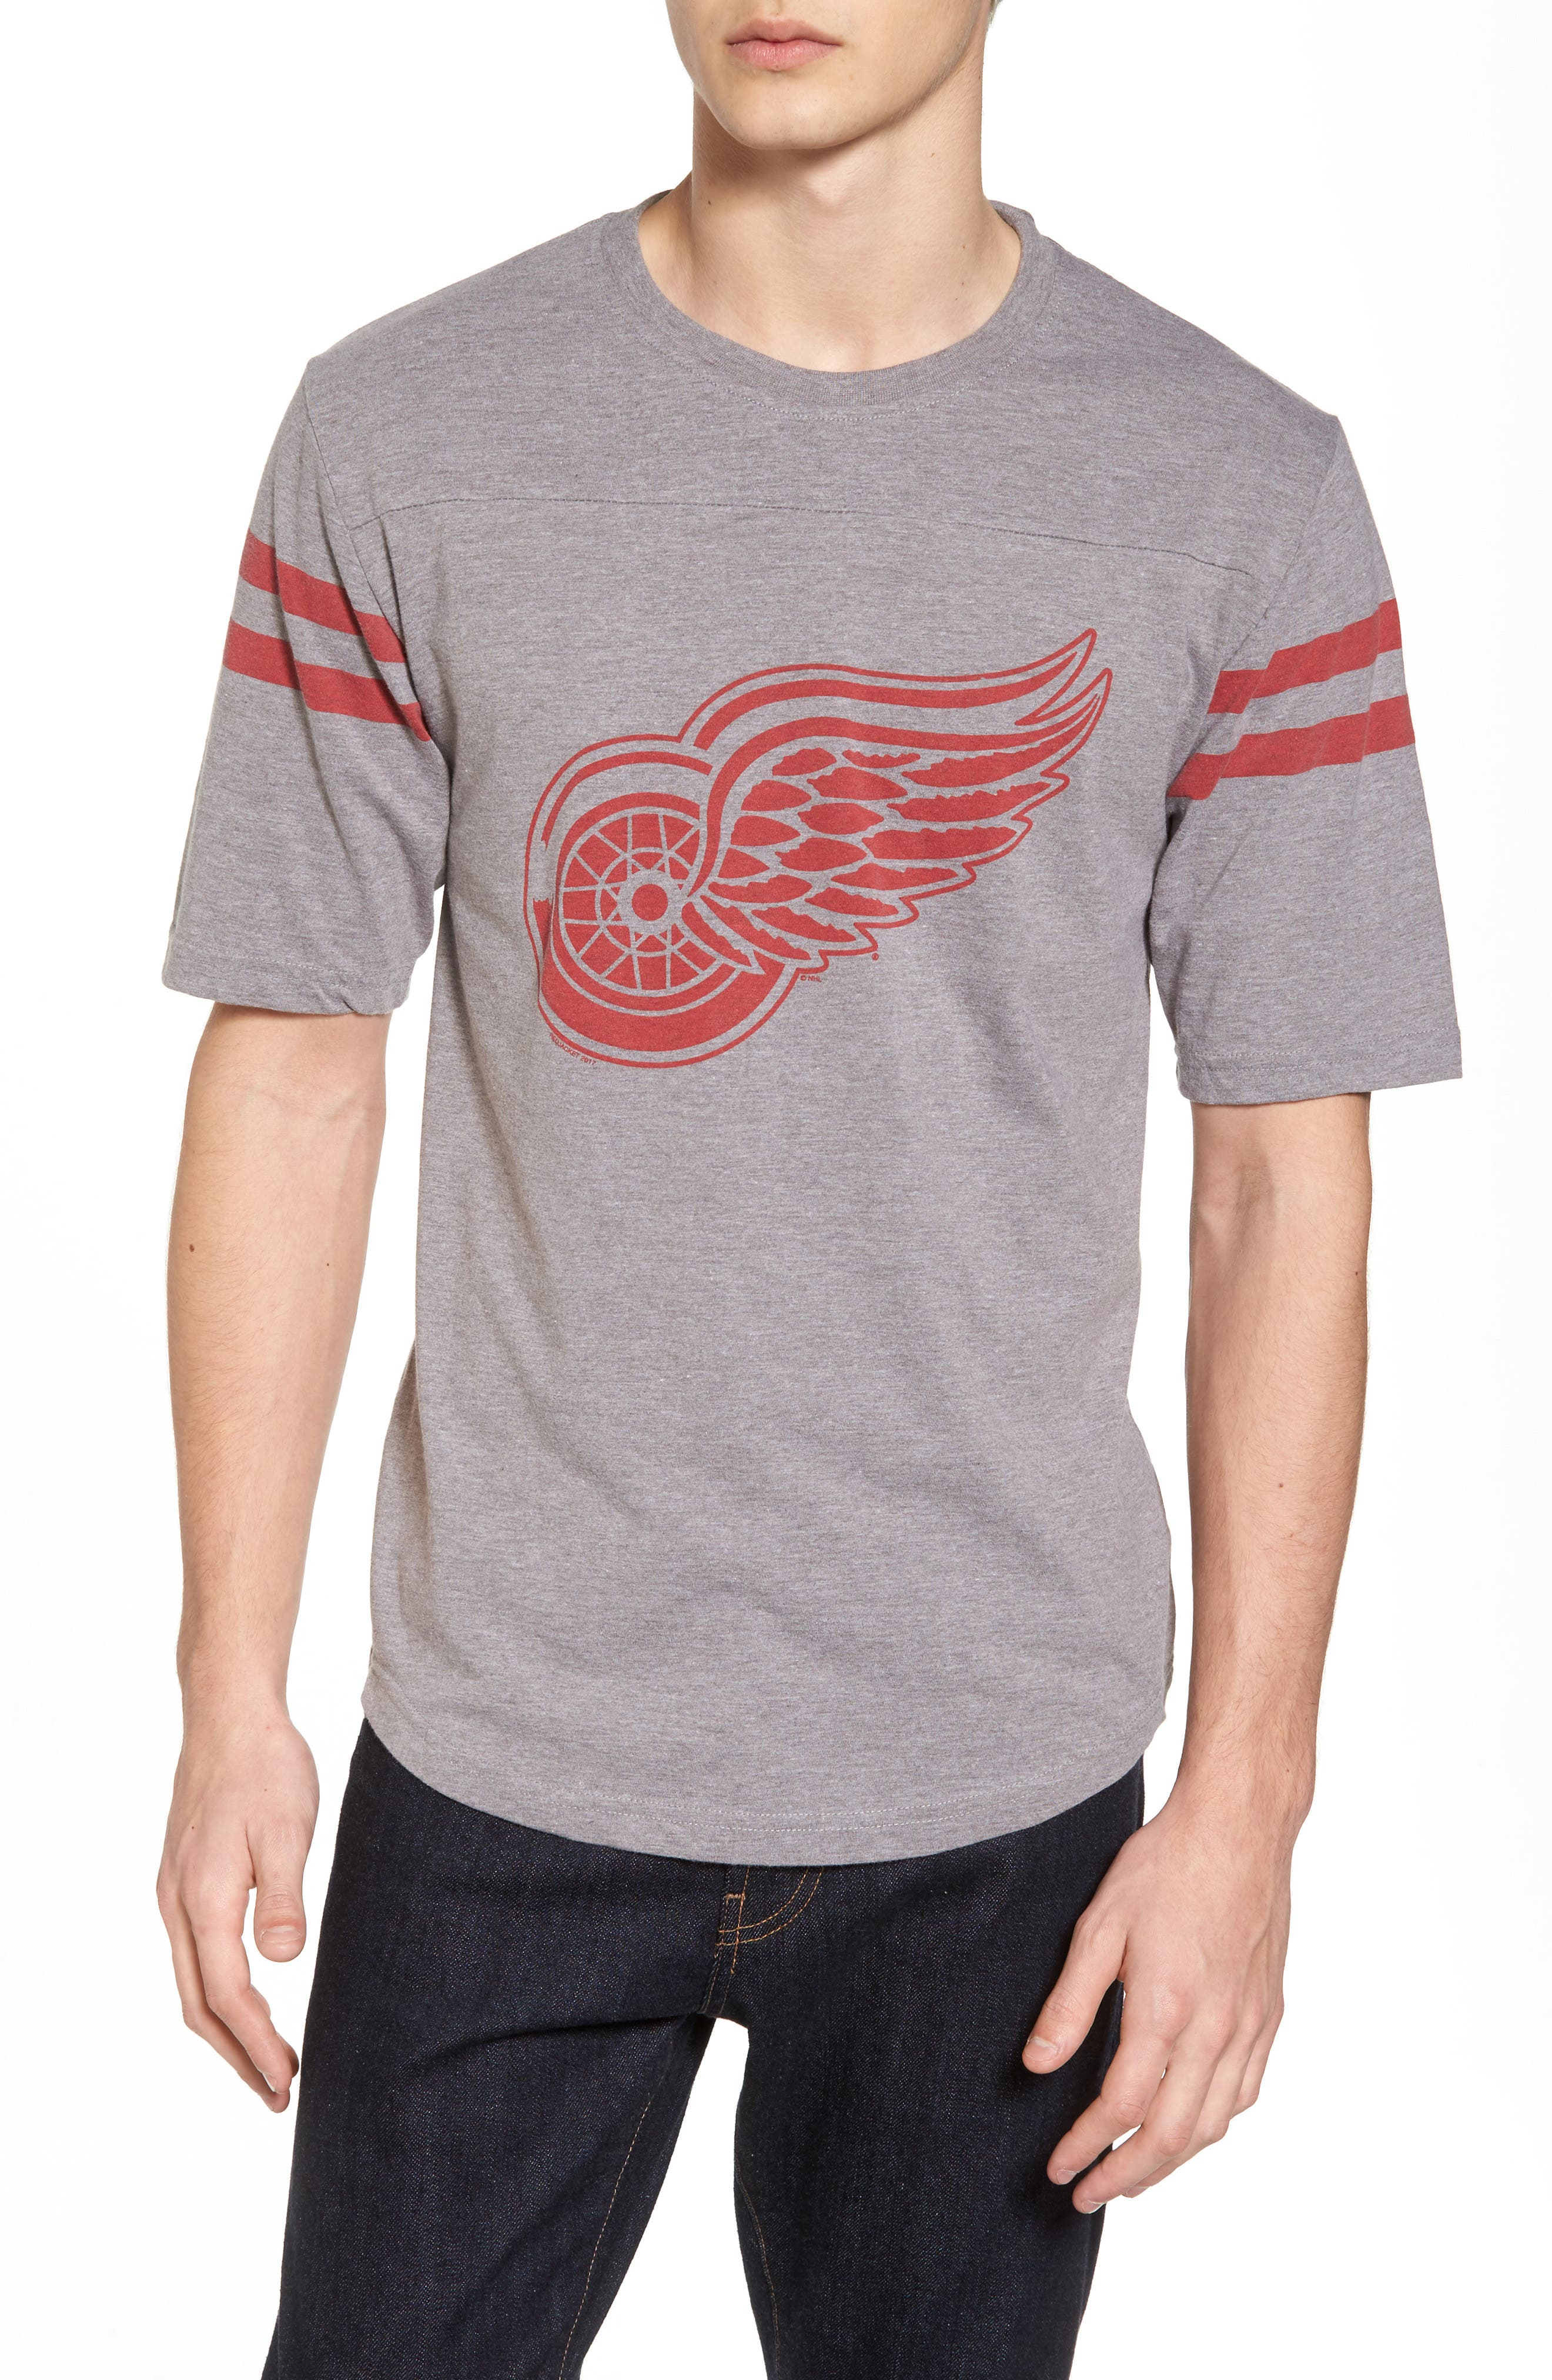 Main Image - American Needle Crosby Detroit Red Wings T-Shirt